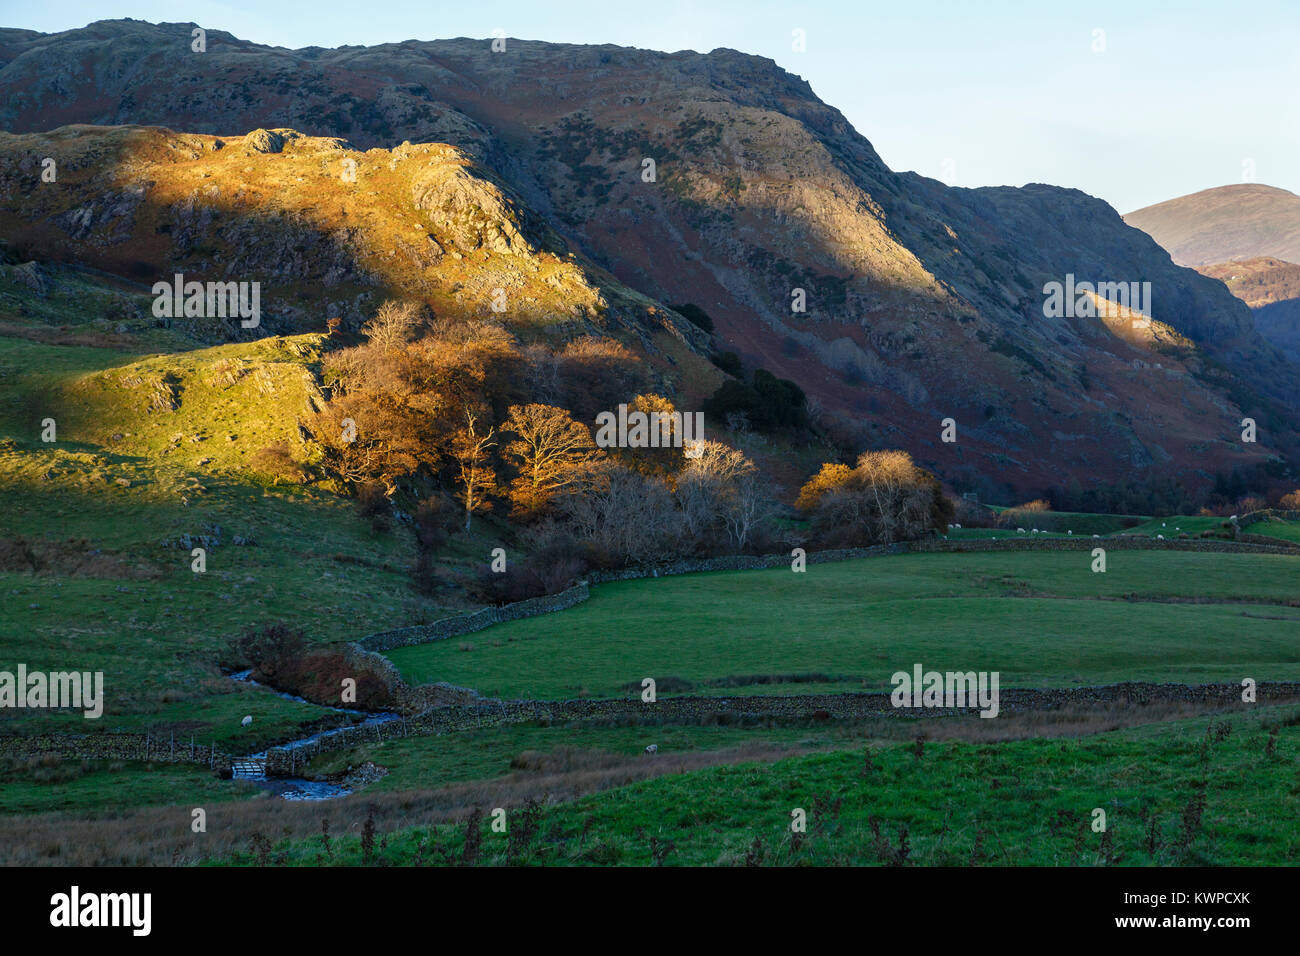 Scrow Beck and Foul Scrow near Coniston, Lake District National Park, Cumbria - Stock Image